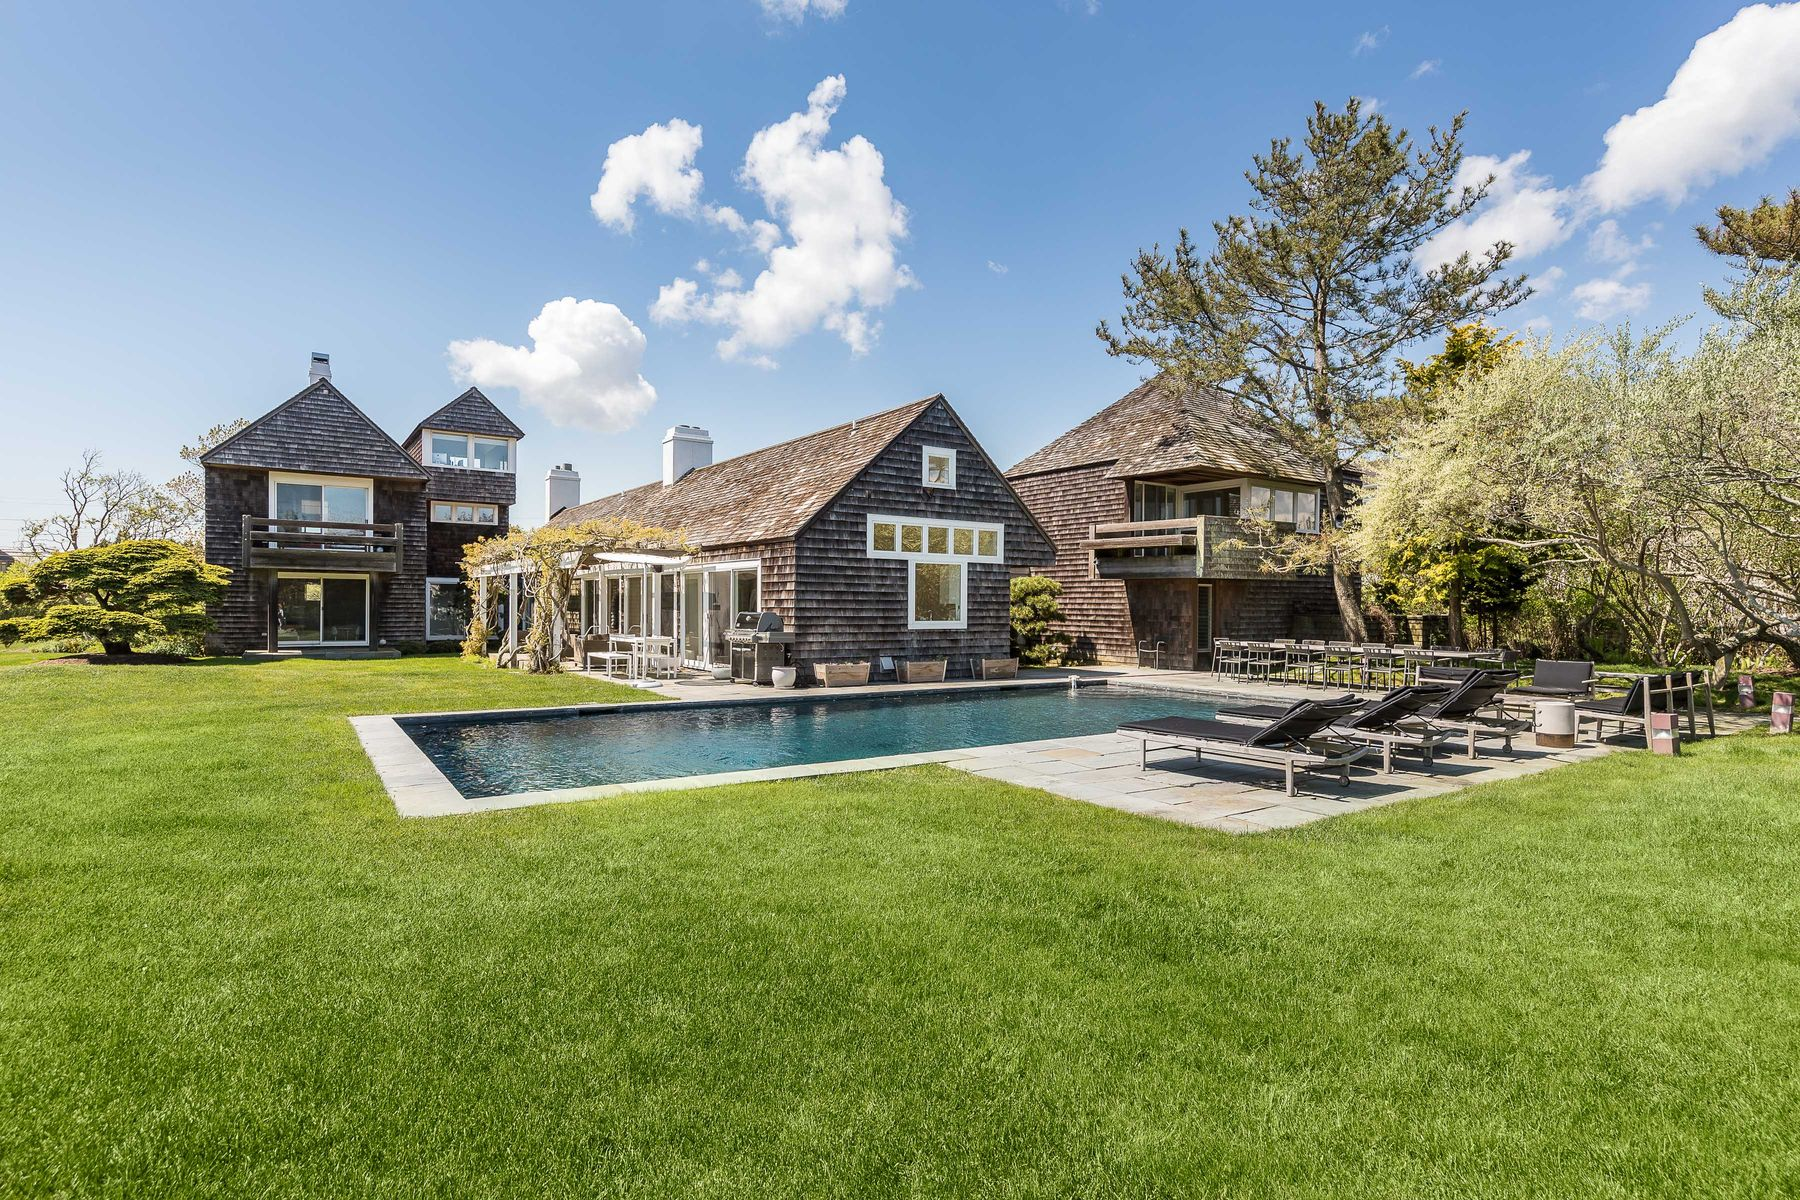 Single Family Home for Active at A Stone's Throw from the Beach 285 Jobs Lane Bridgehampton, New York 11932 United States